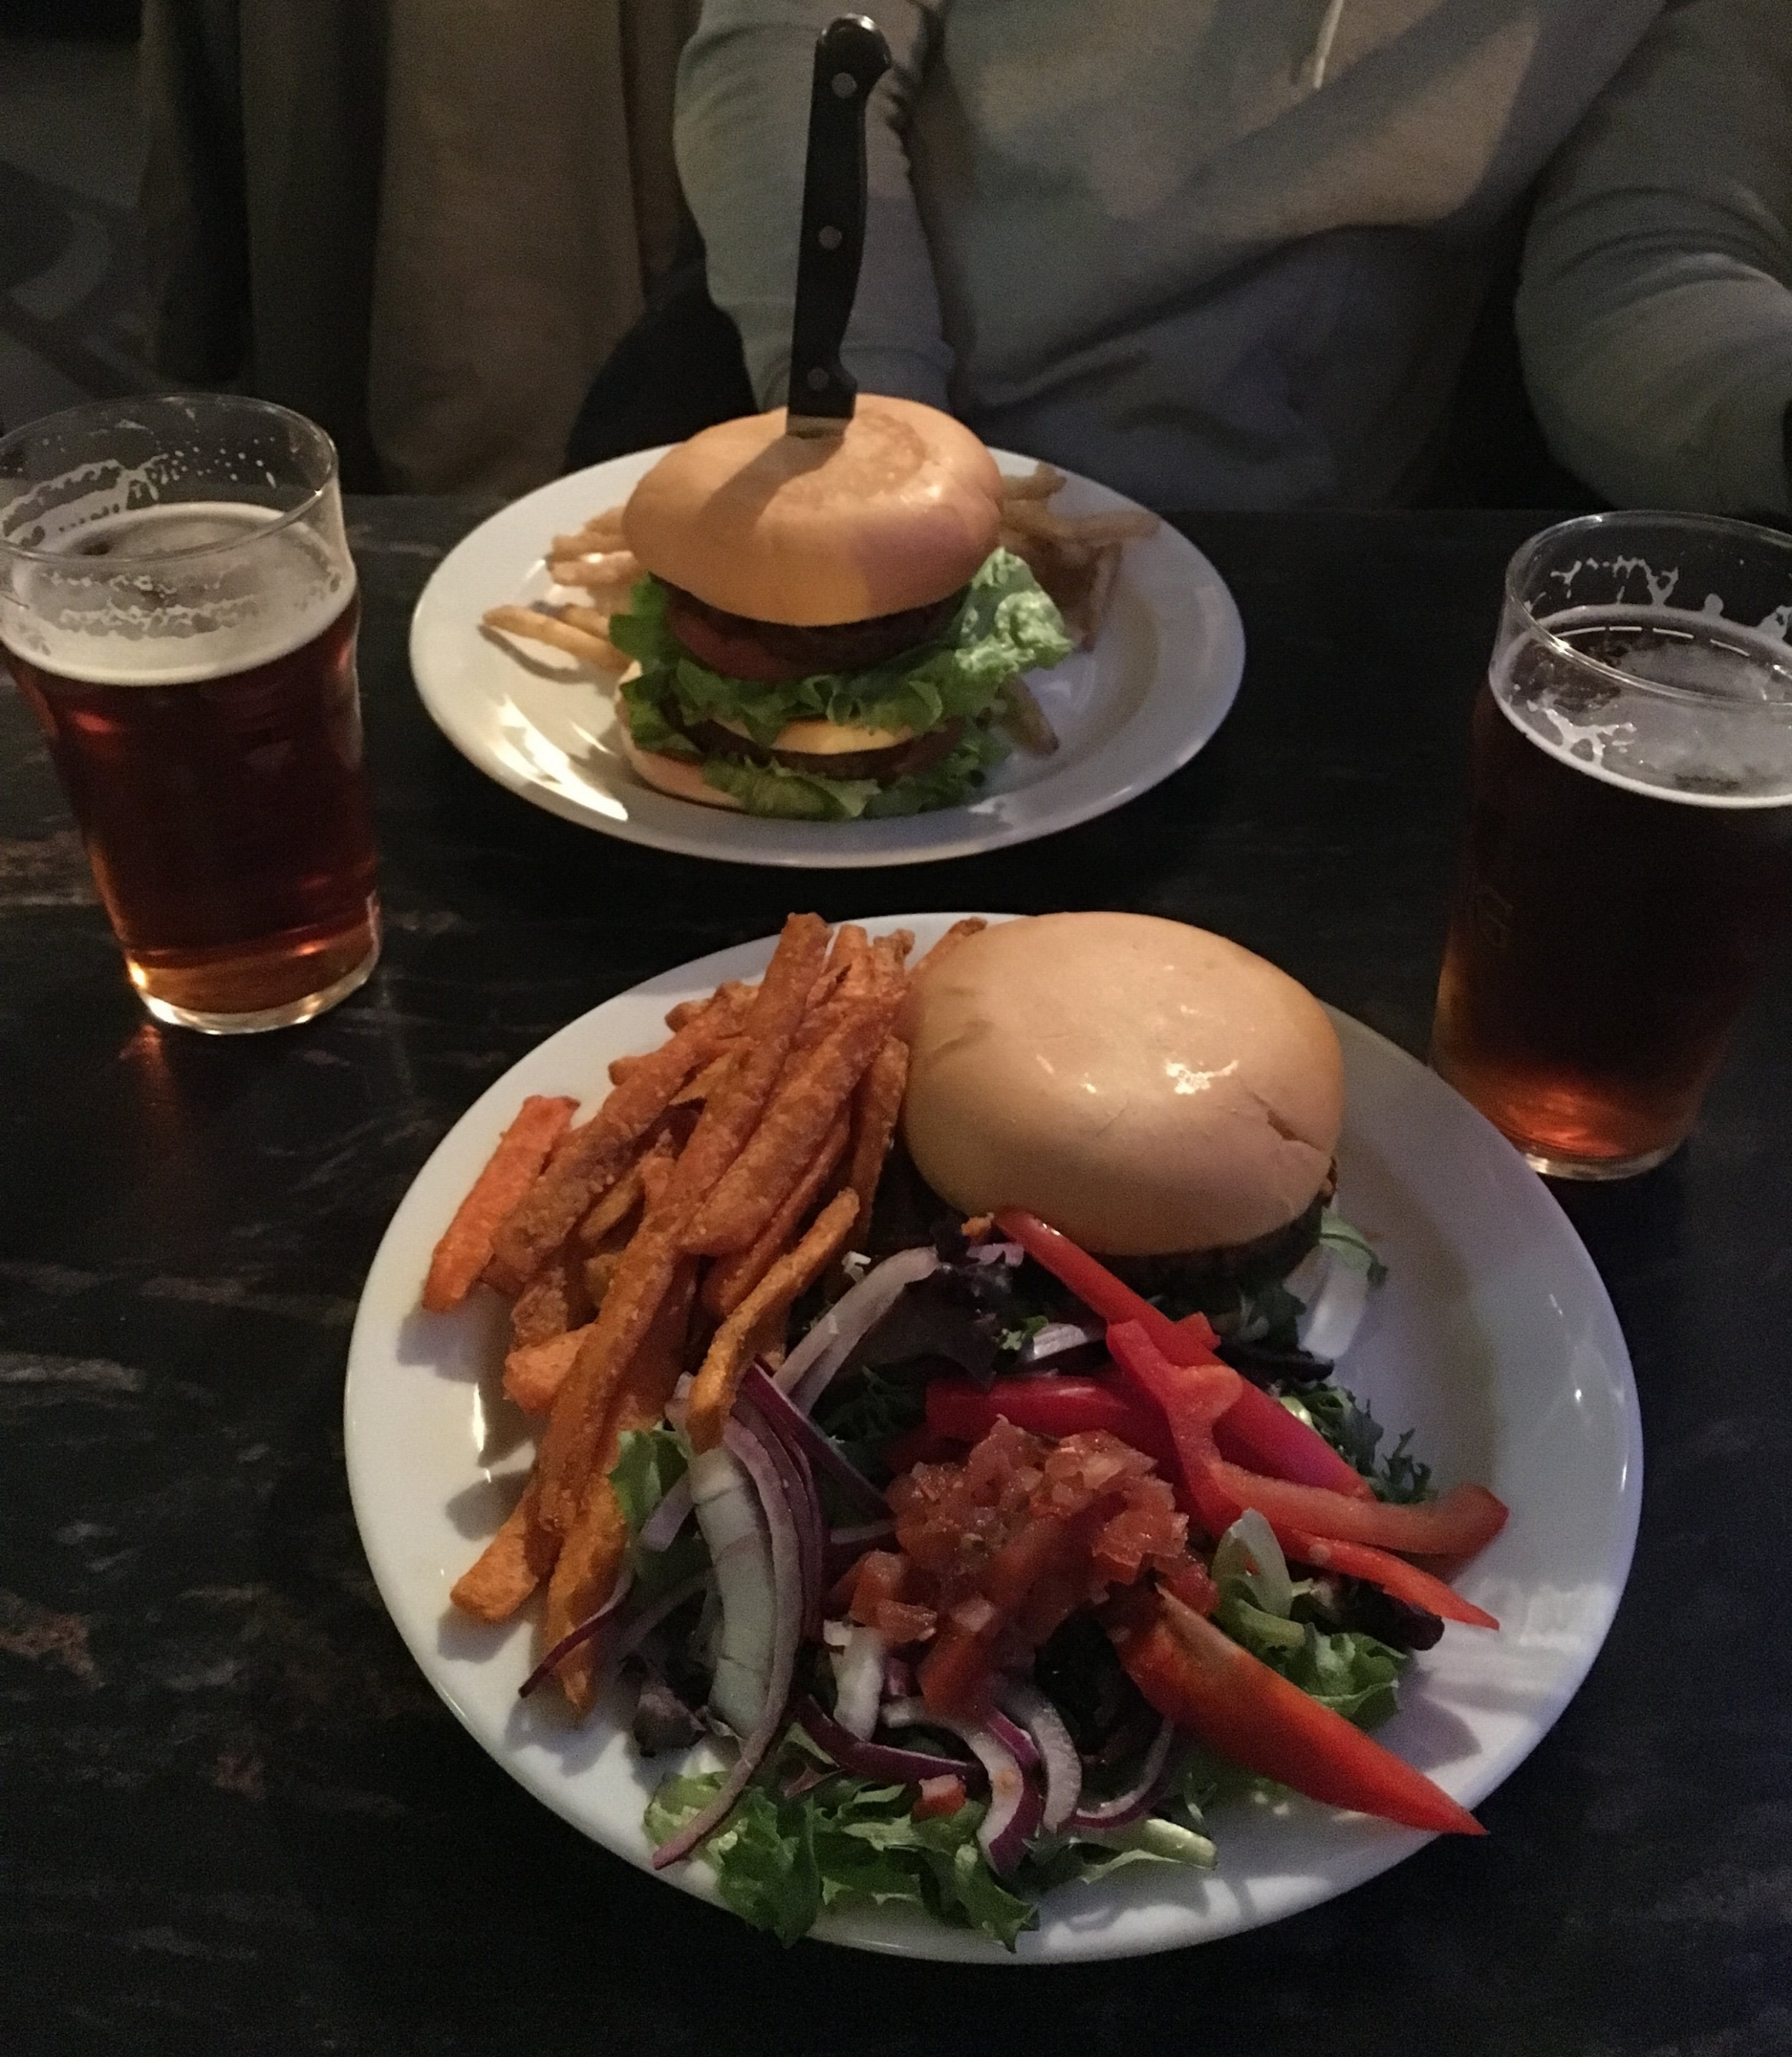 At Prikio you can listen to hip-hop, drink beer and indulge in the spicy vegan burgers - just say yes.